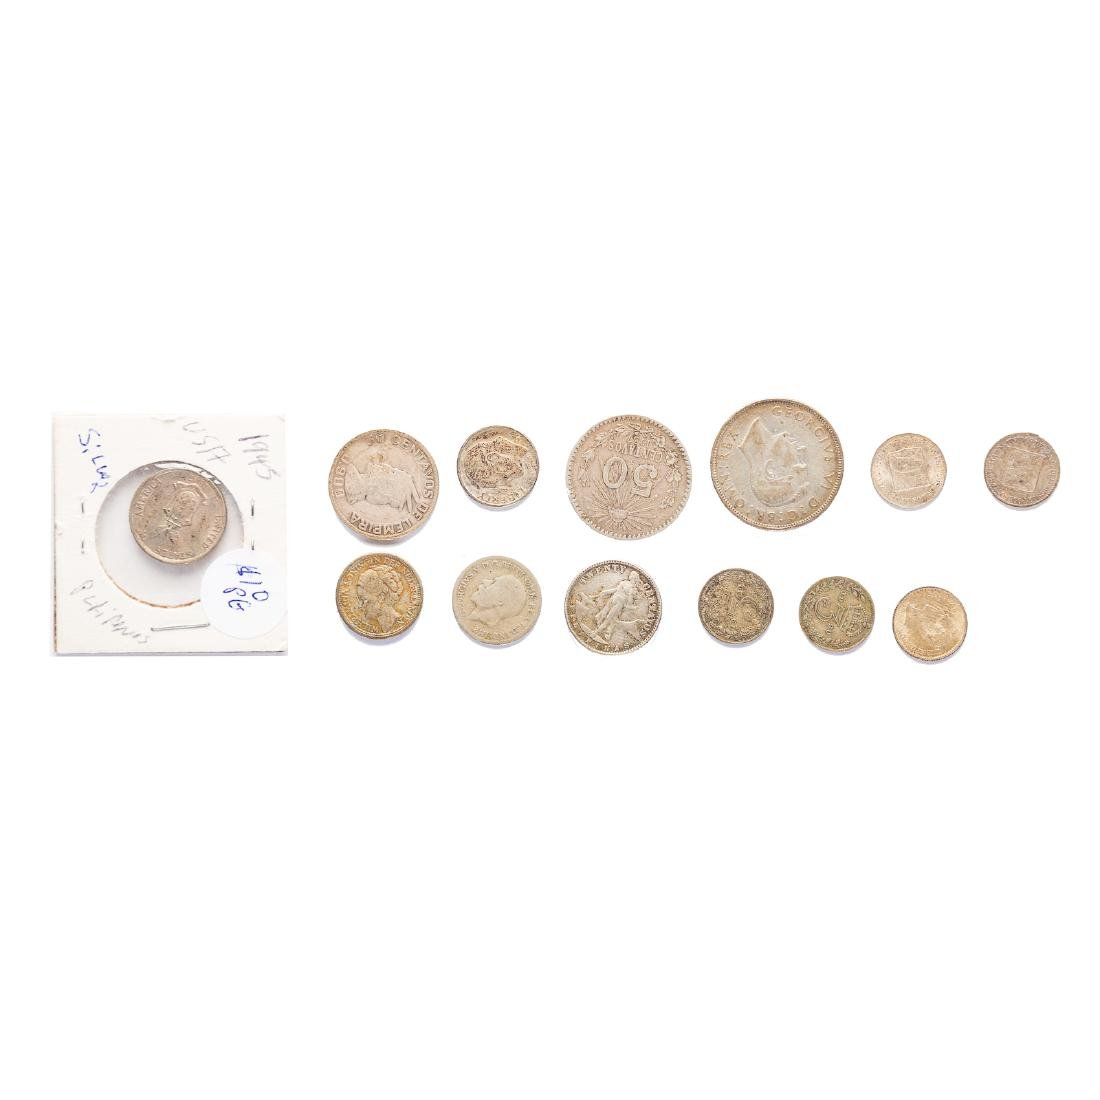 Silver coins and collectibles - 3